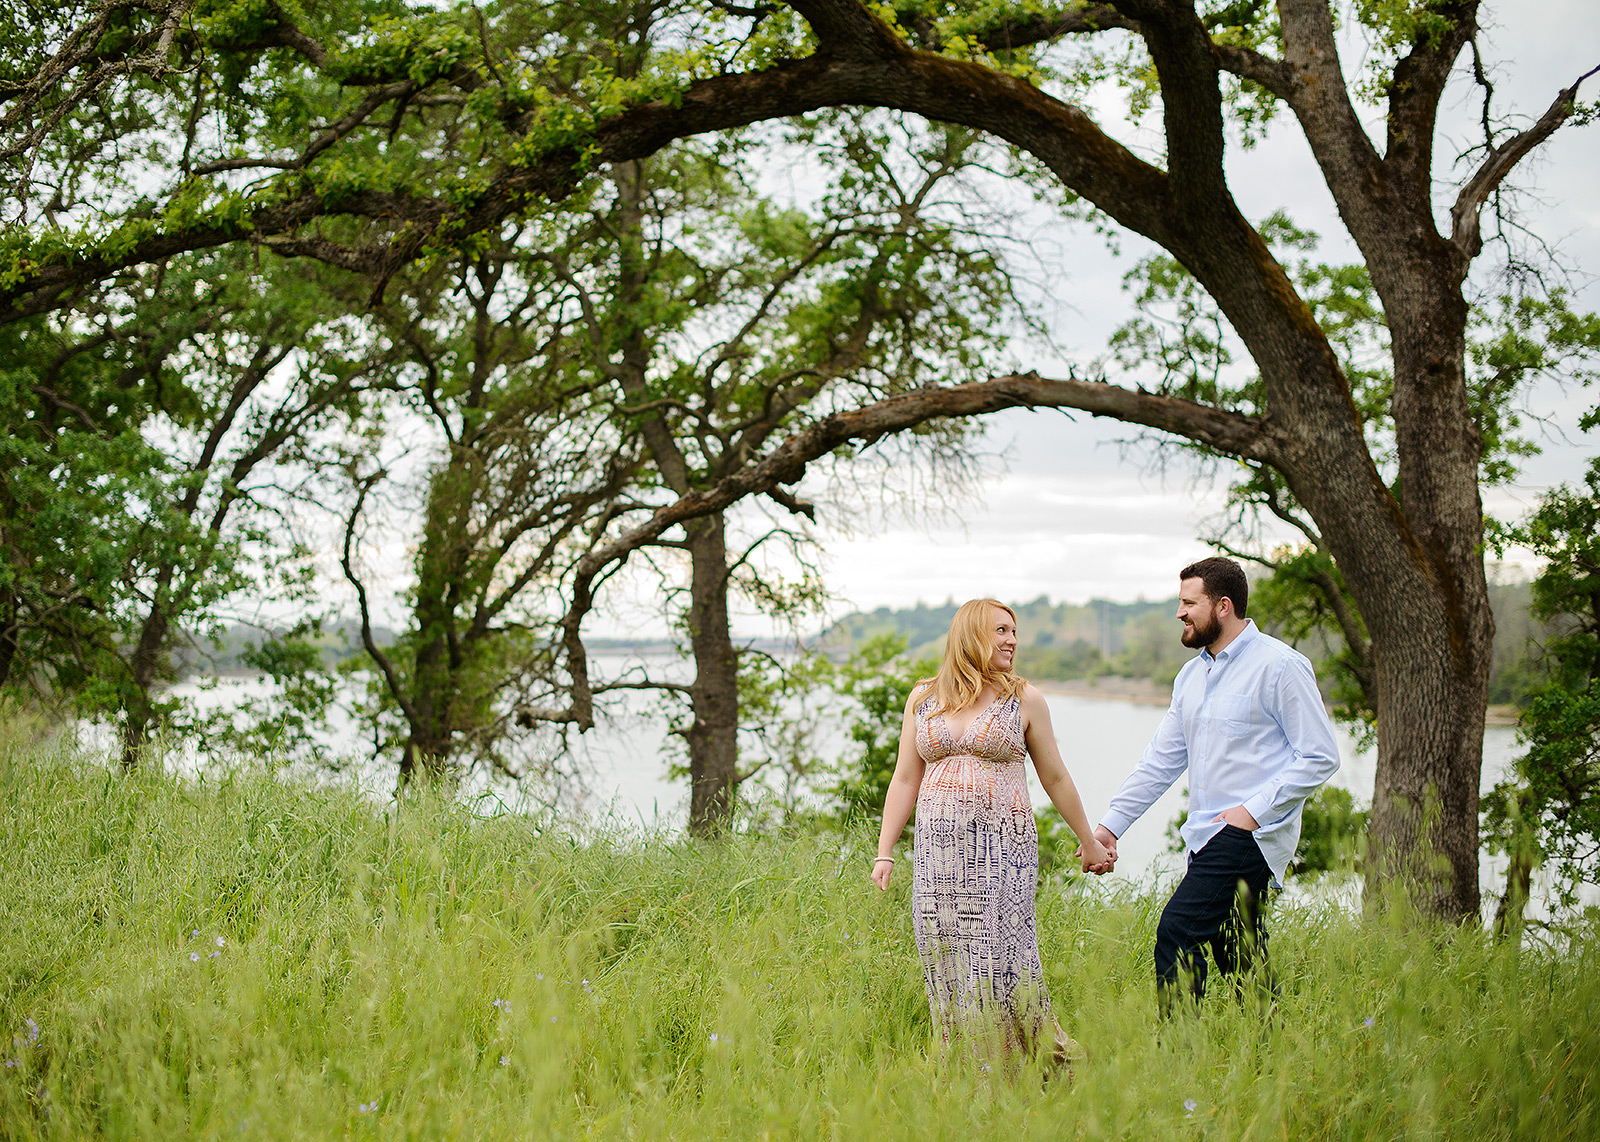 Expecting couple holding hands in tall grass with tree background, perfect for maternity portraits in folsom